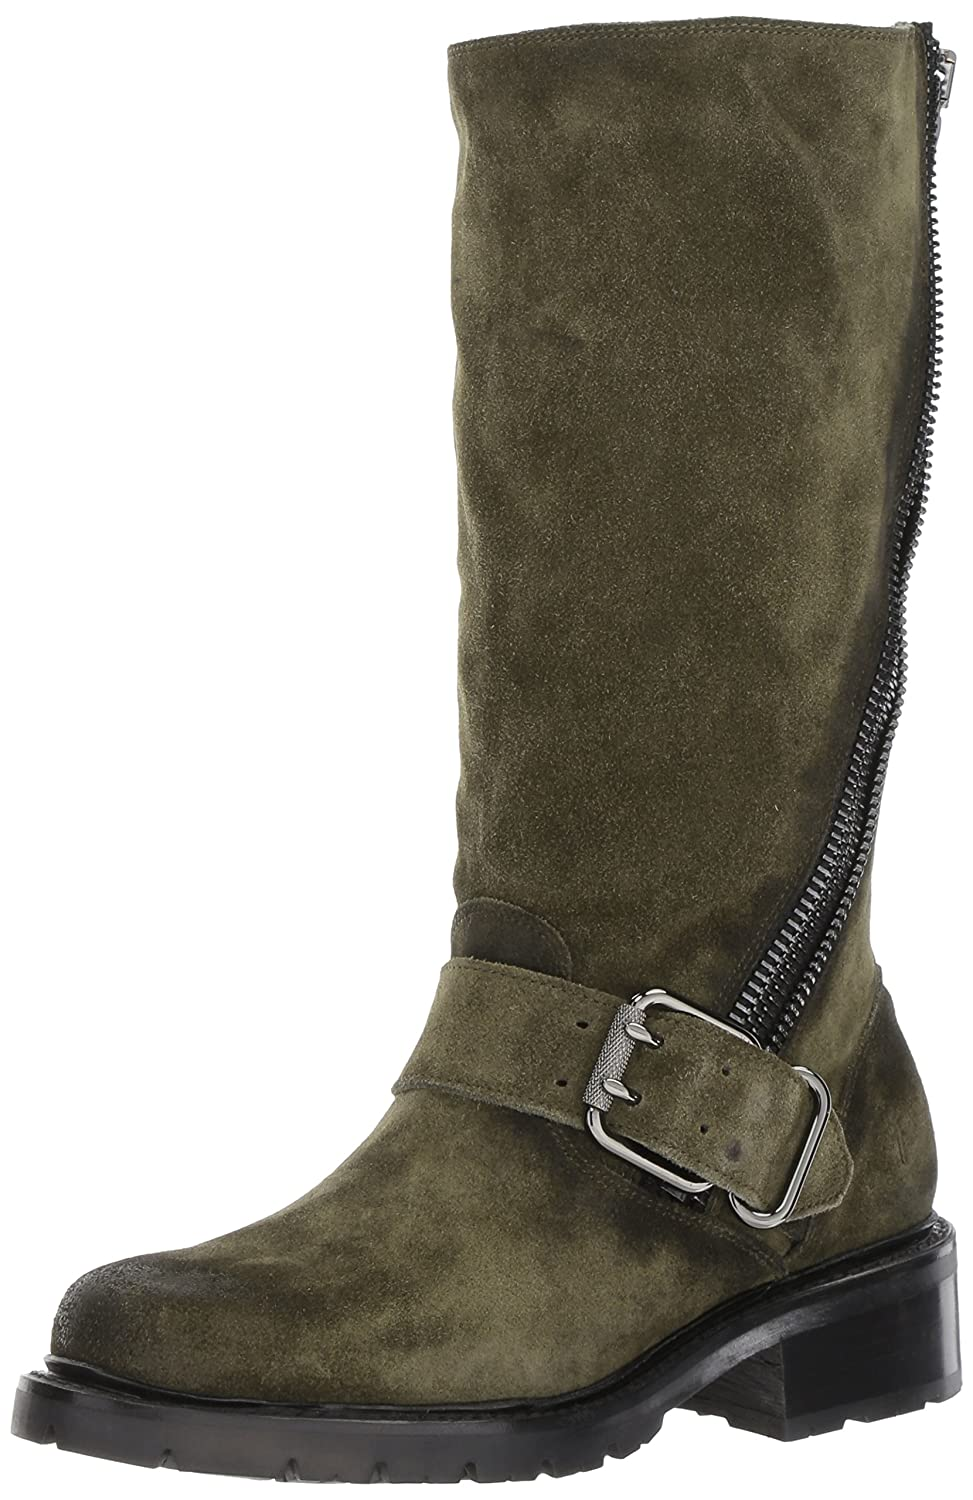 FRYE Women's Samantha Zip Tall Motorcycle Boot B01MU715L6 7.5 B(M) US|Forest Soft Oiled Suede